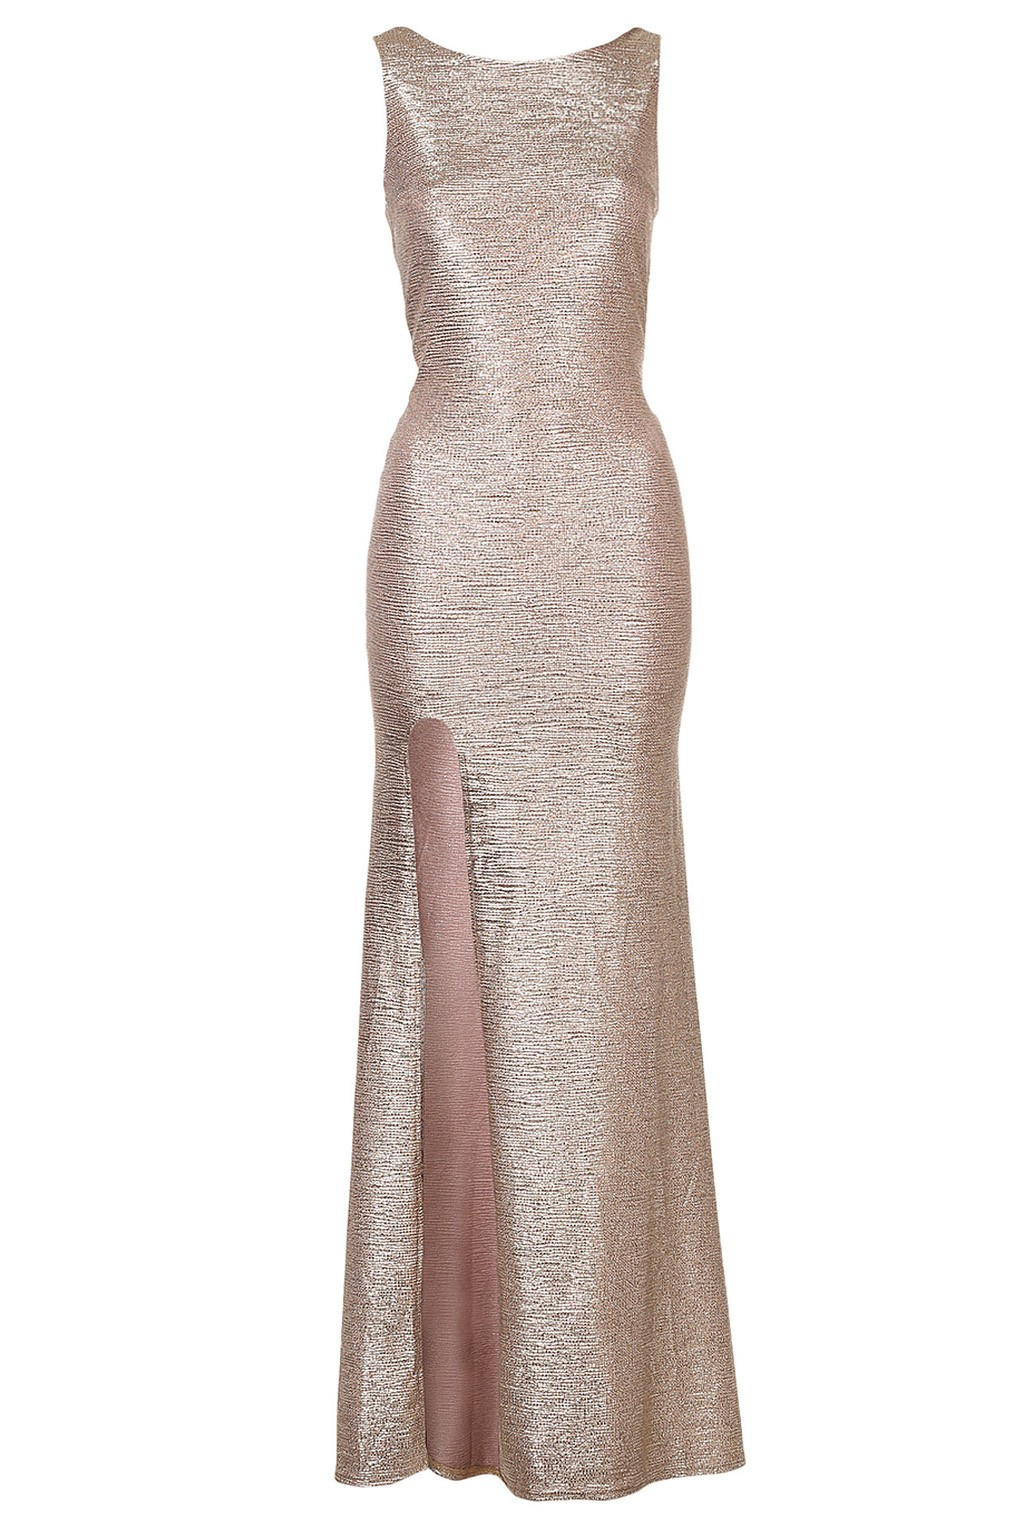 Sequin bodycon dress by tfnc maxi